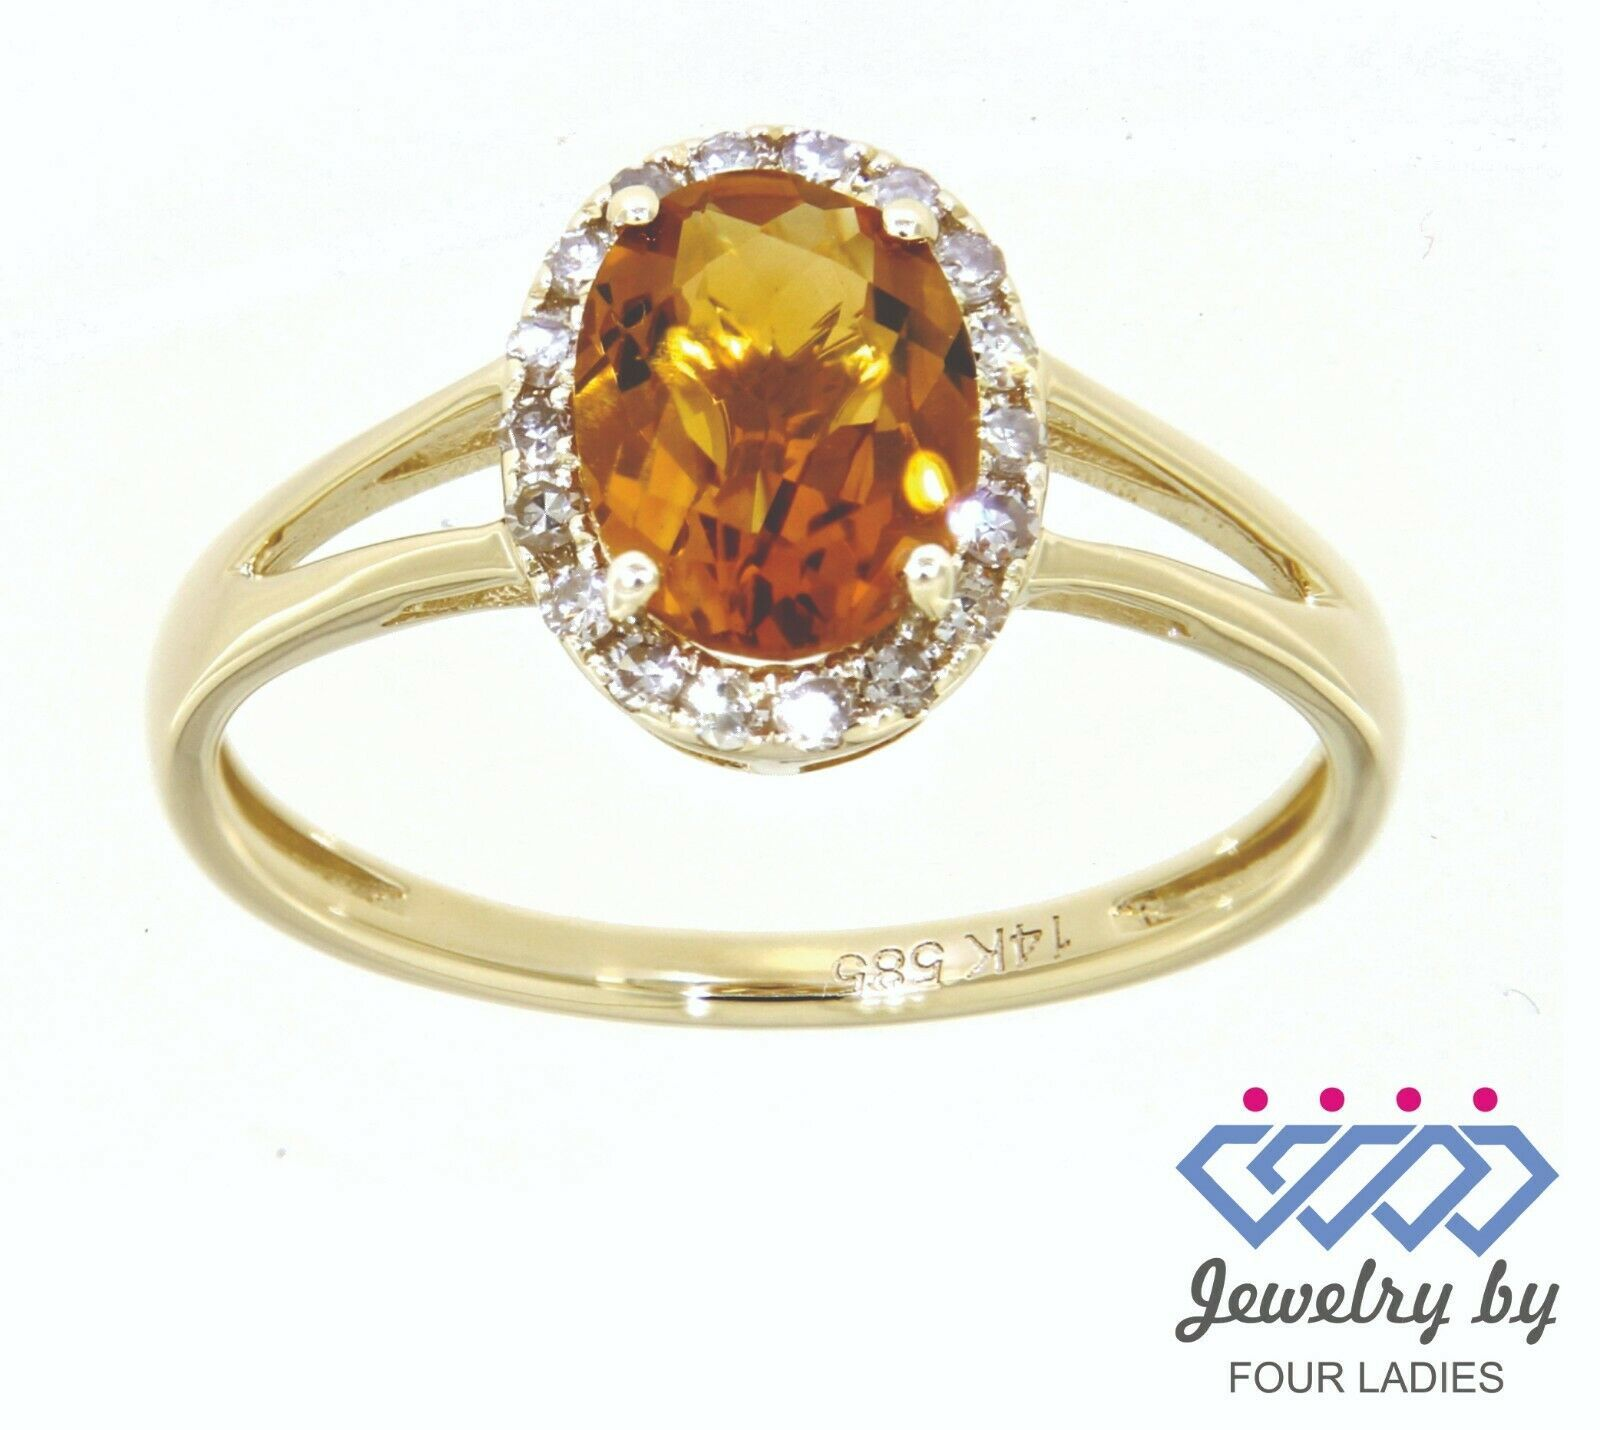 Primary image for Citrino Gemma 14K Oro Giallo 1.04CT Vero Naturale Halo Anello Diamante